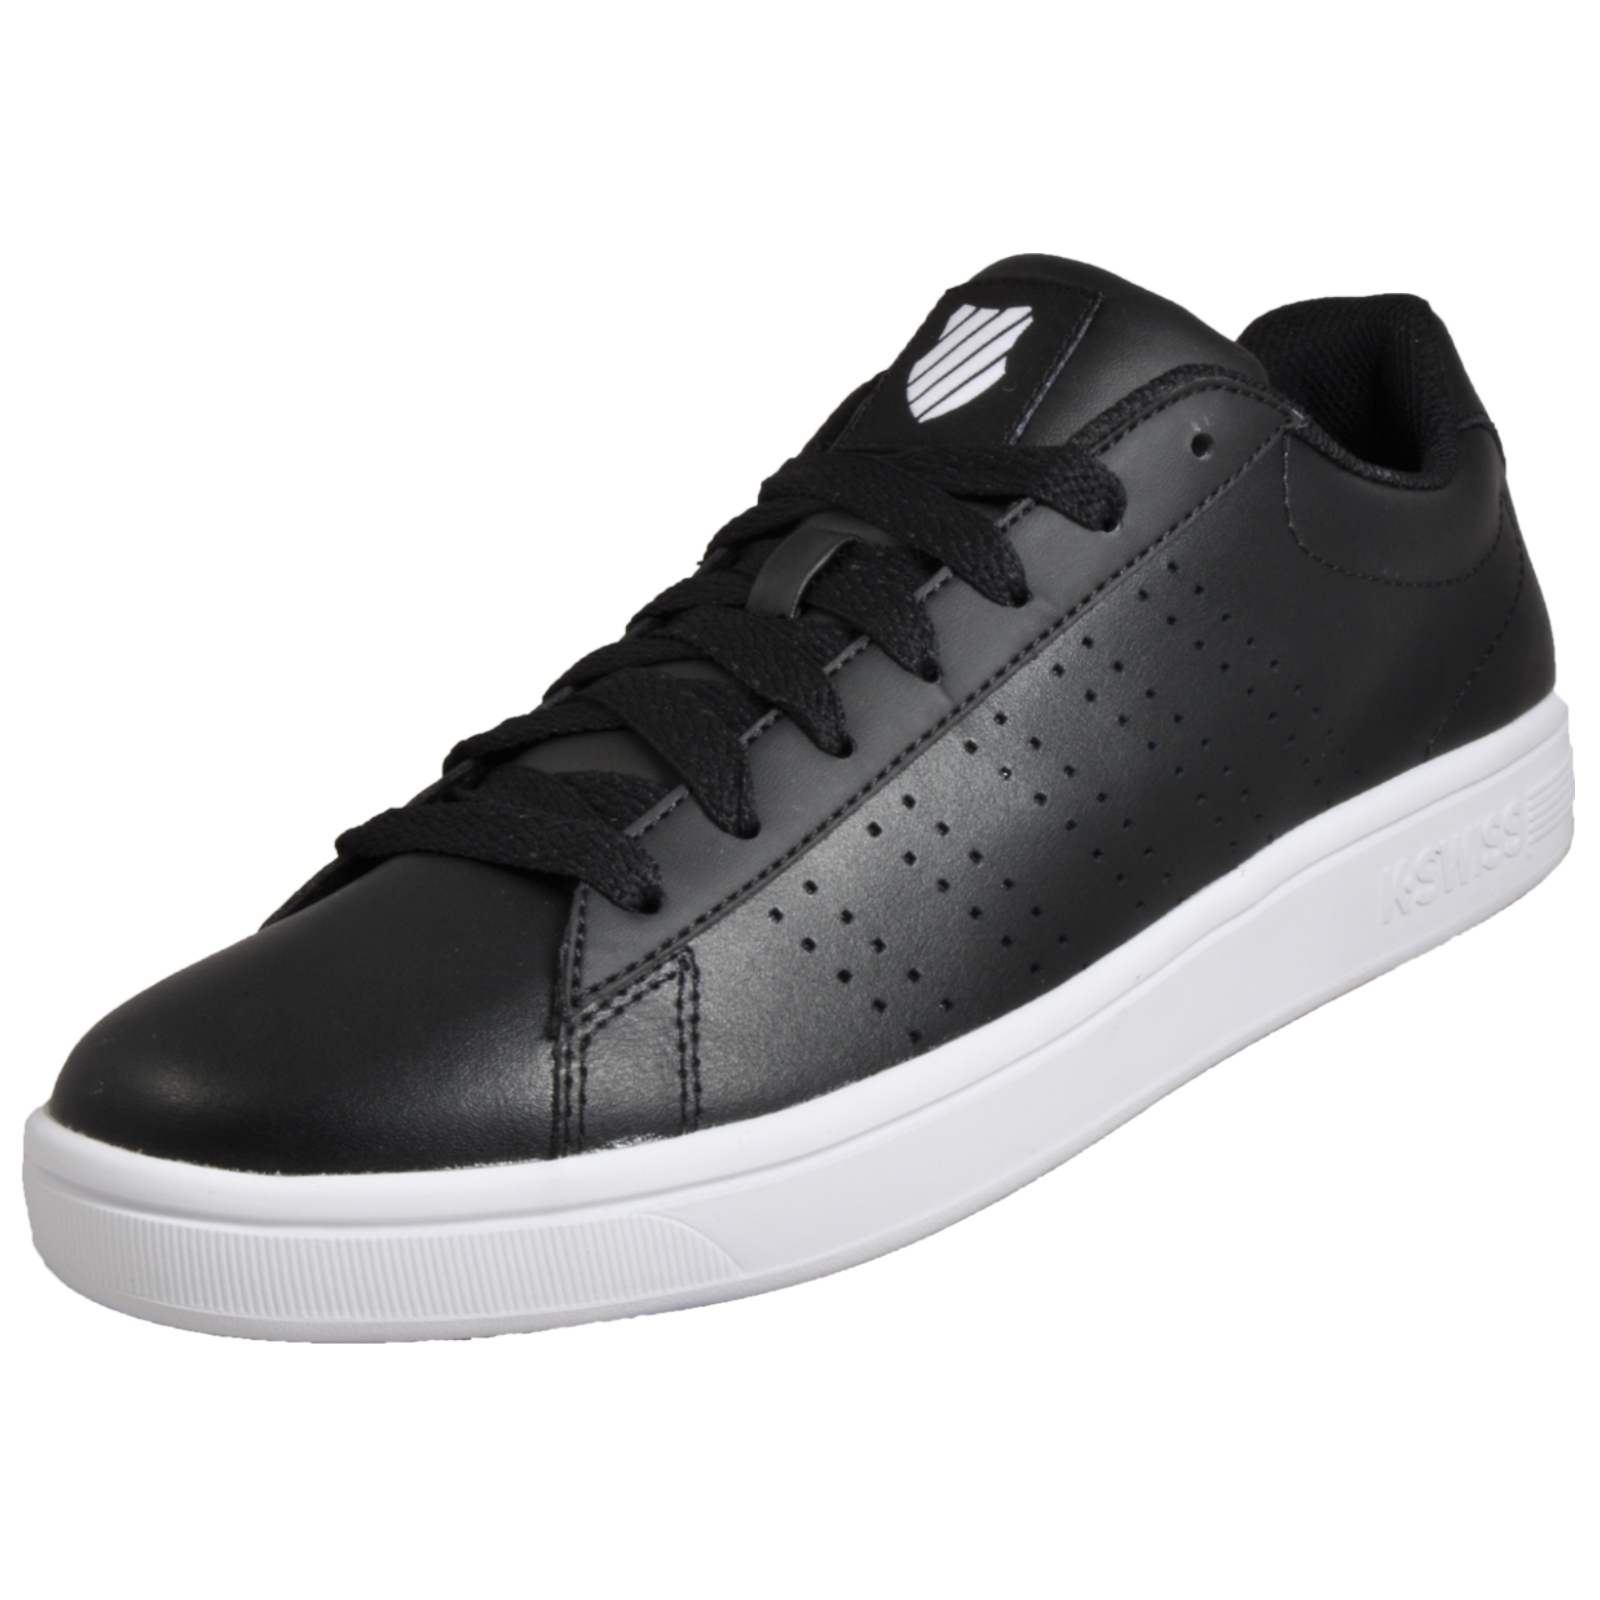 f6416ba4654bab K Swiss Court Casper Men s Classic Casual Retro Lifestyle Trainers Black